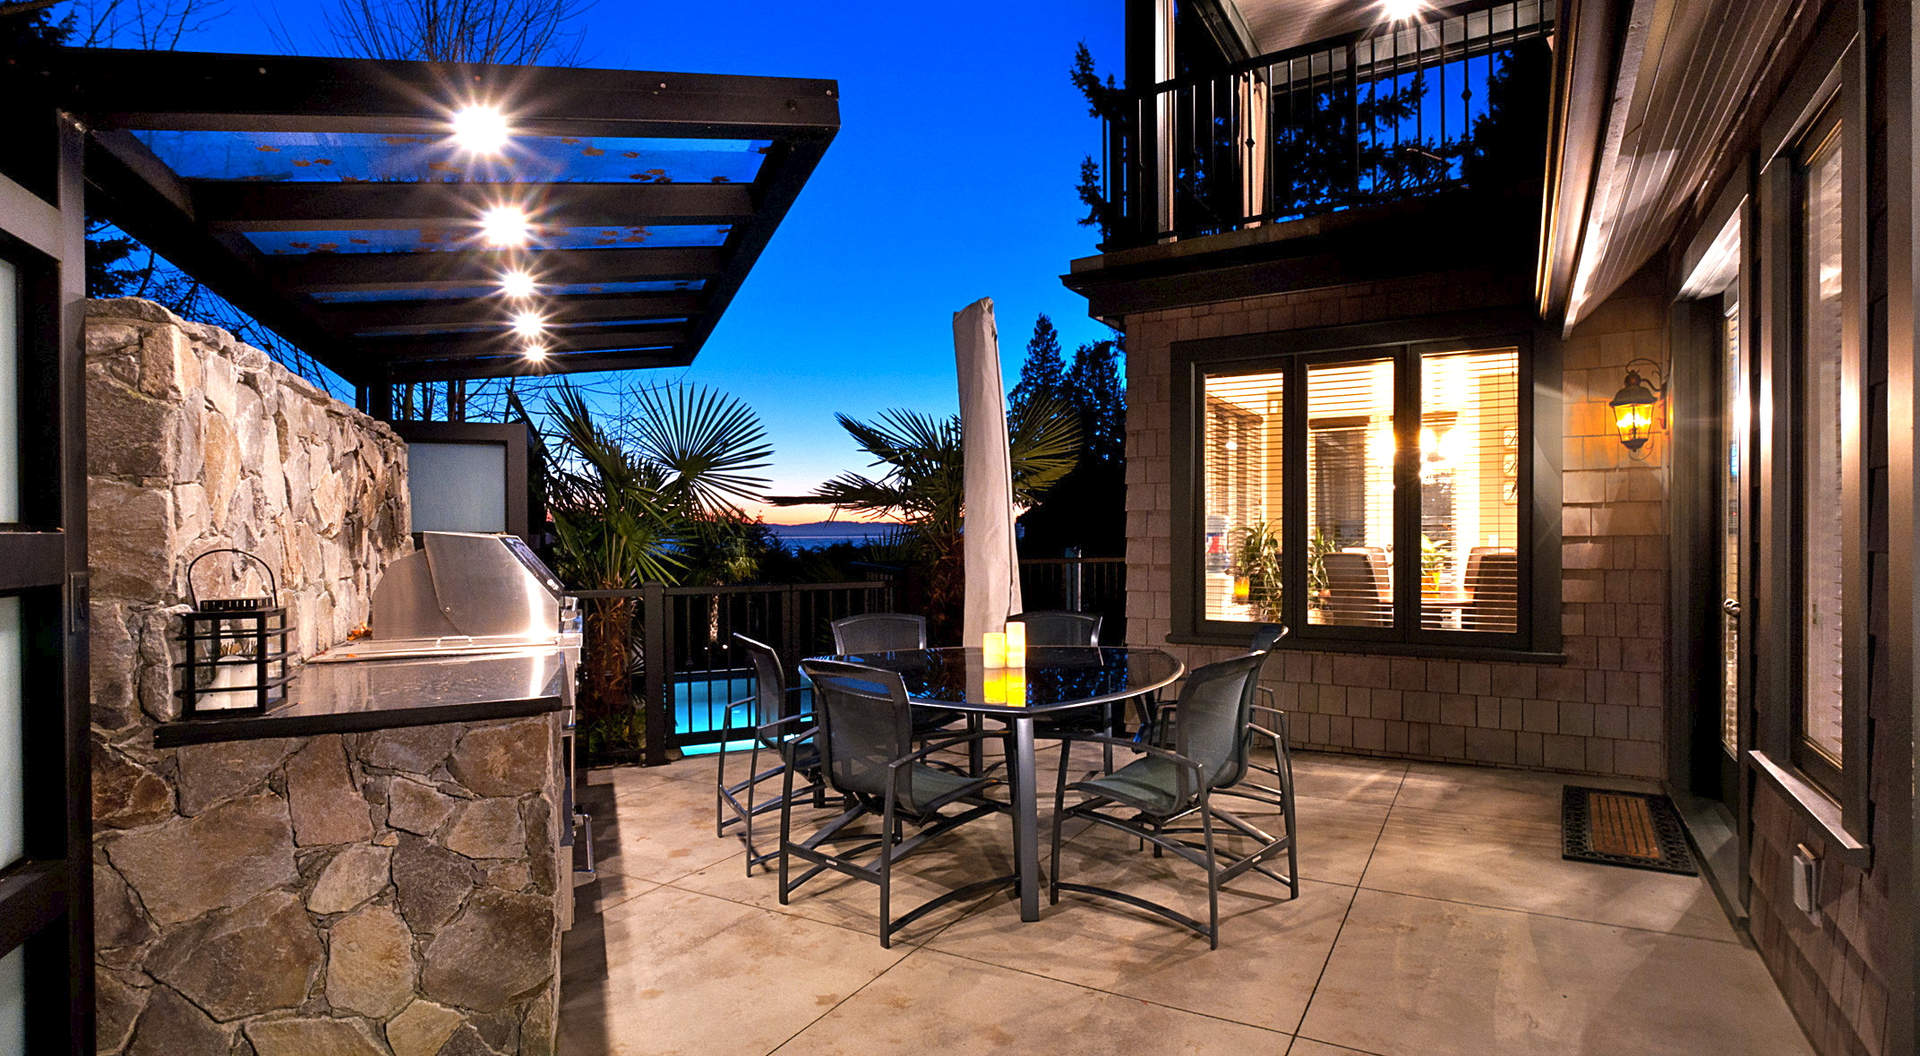 Sensational Outdoor Patio & BBQ Center